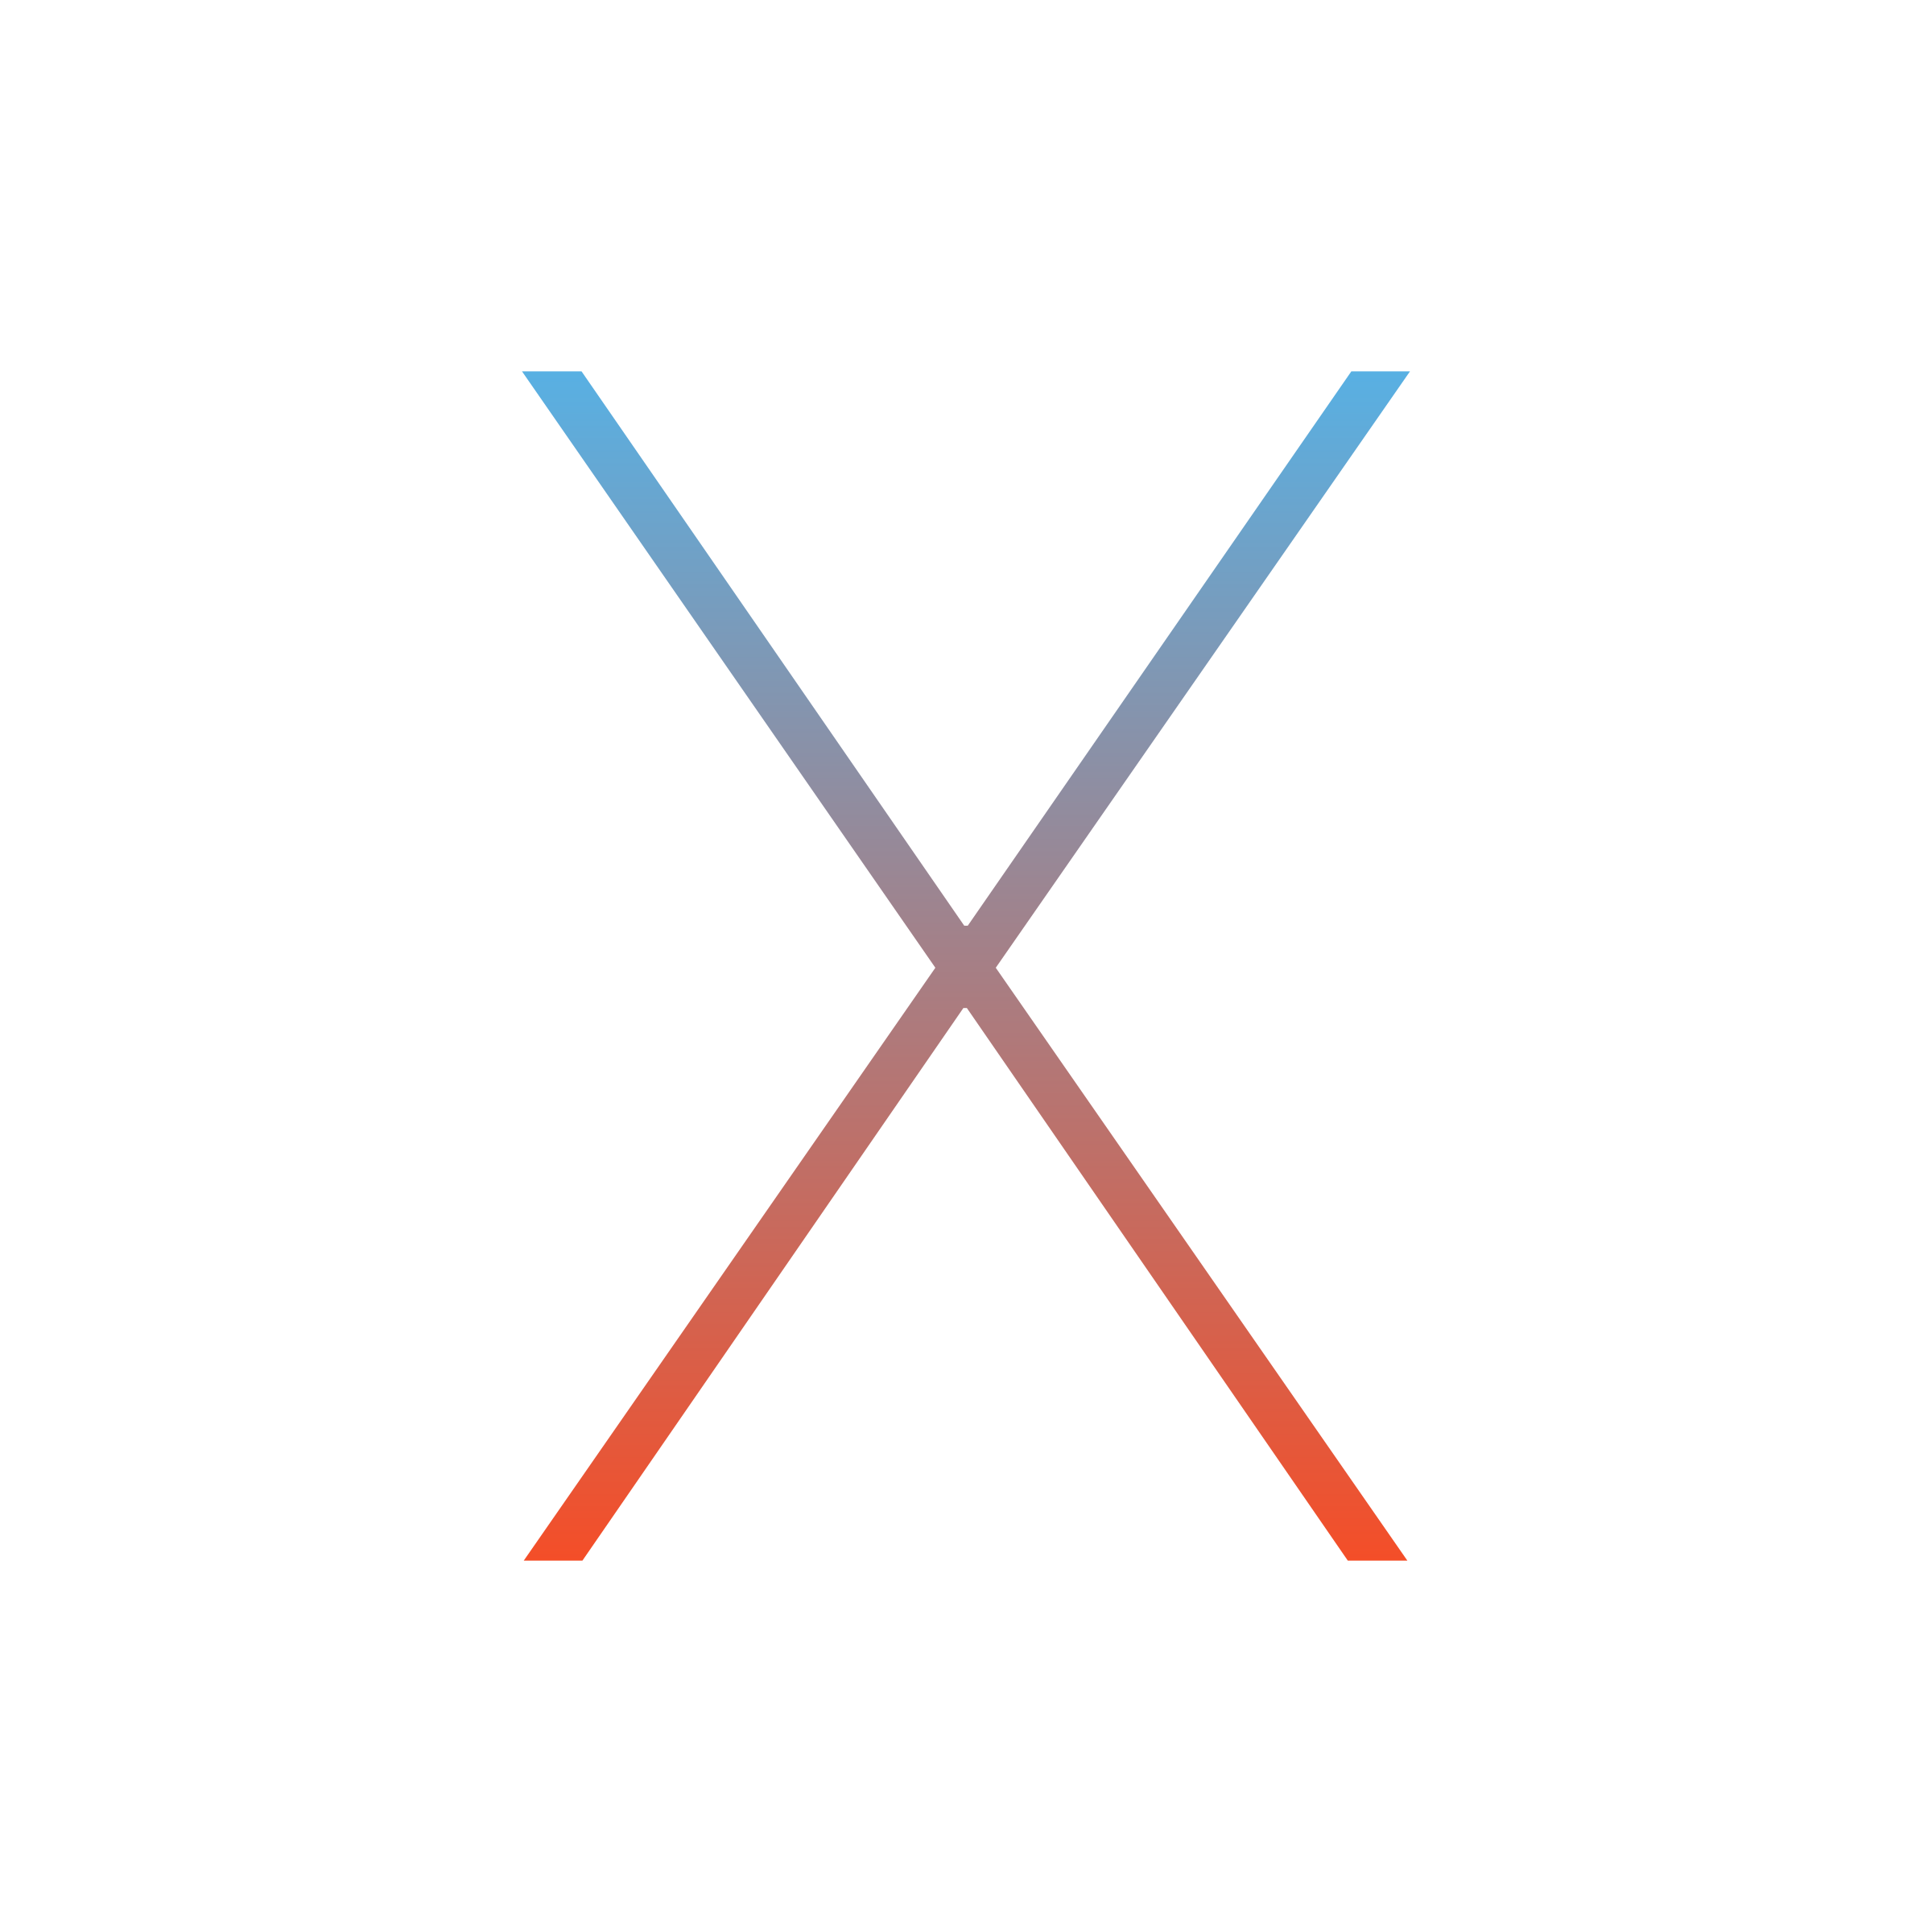 Mac os x logo download free clipart with a transparent.